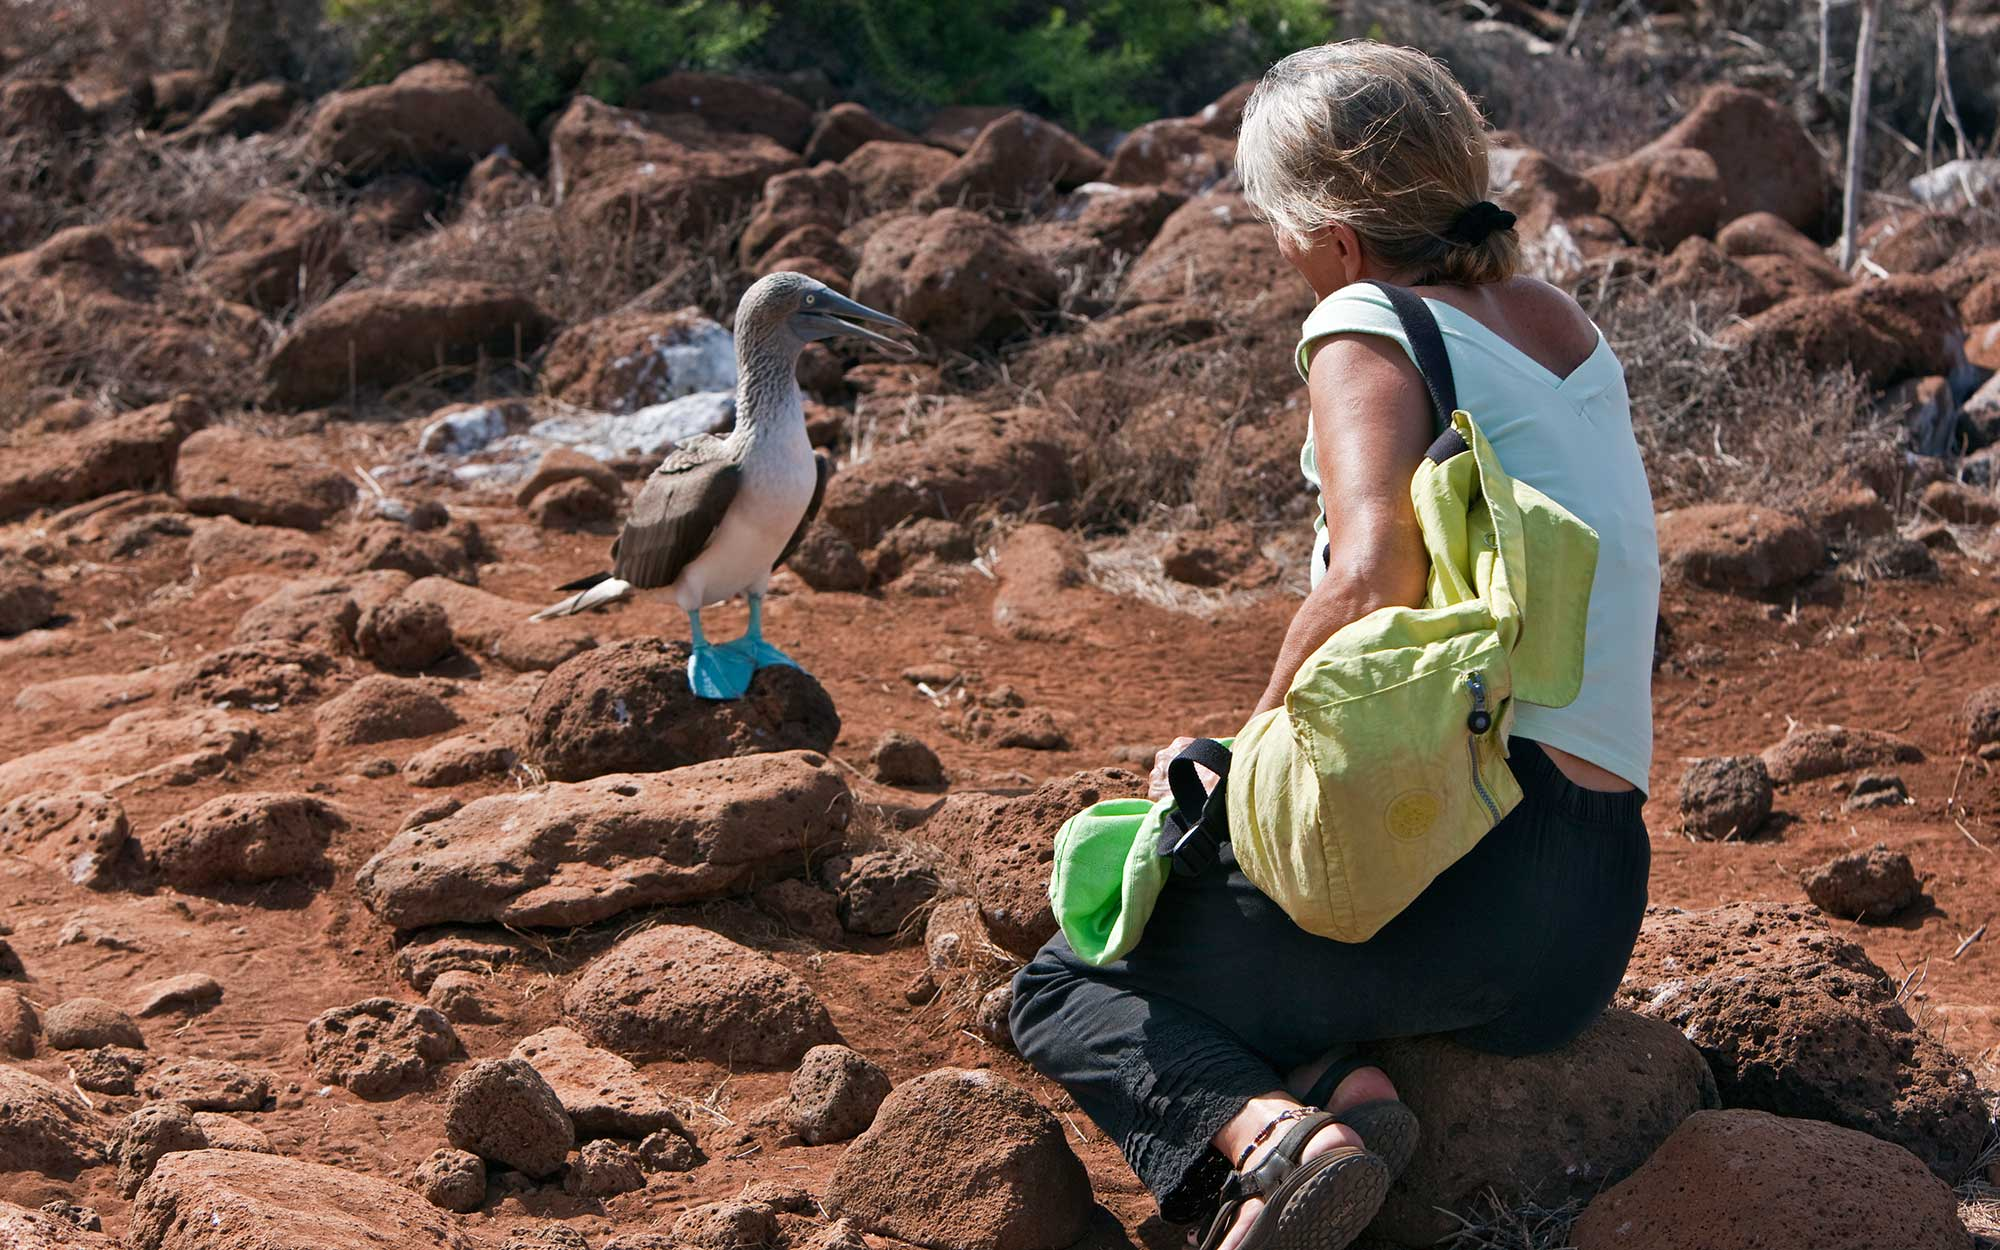 Galapagos Islands, A blue-footed booby on North Seymour island shows no fear of a visitor.